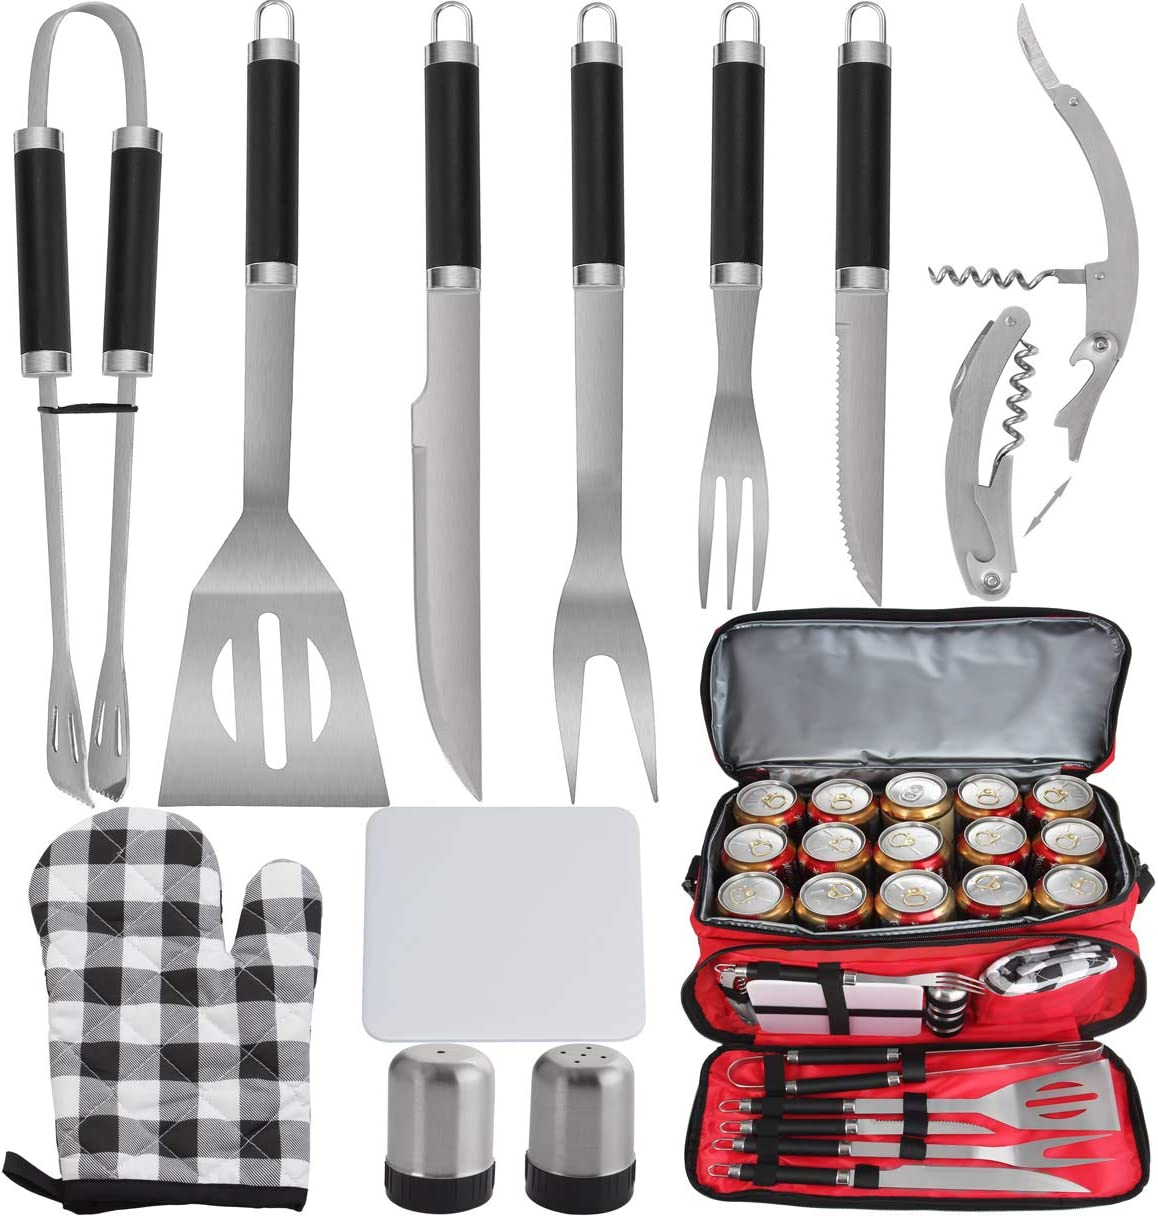 POLIGO 12pcs Stainless Steel BBQ Grill Tools Set with Red Insulated Waterproof Cooler Bag - Premium Barbecue Grill Accessories for Father's Day Birthday Presents Ideal Grilling Gifts for Dad Men Women